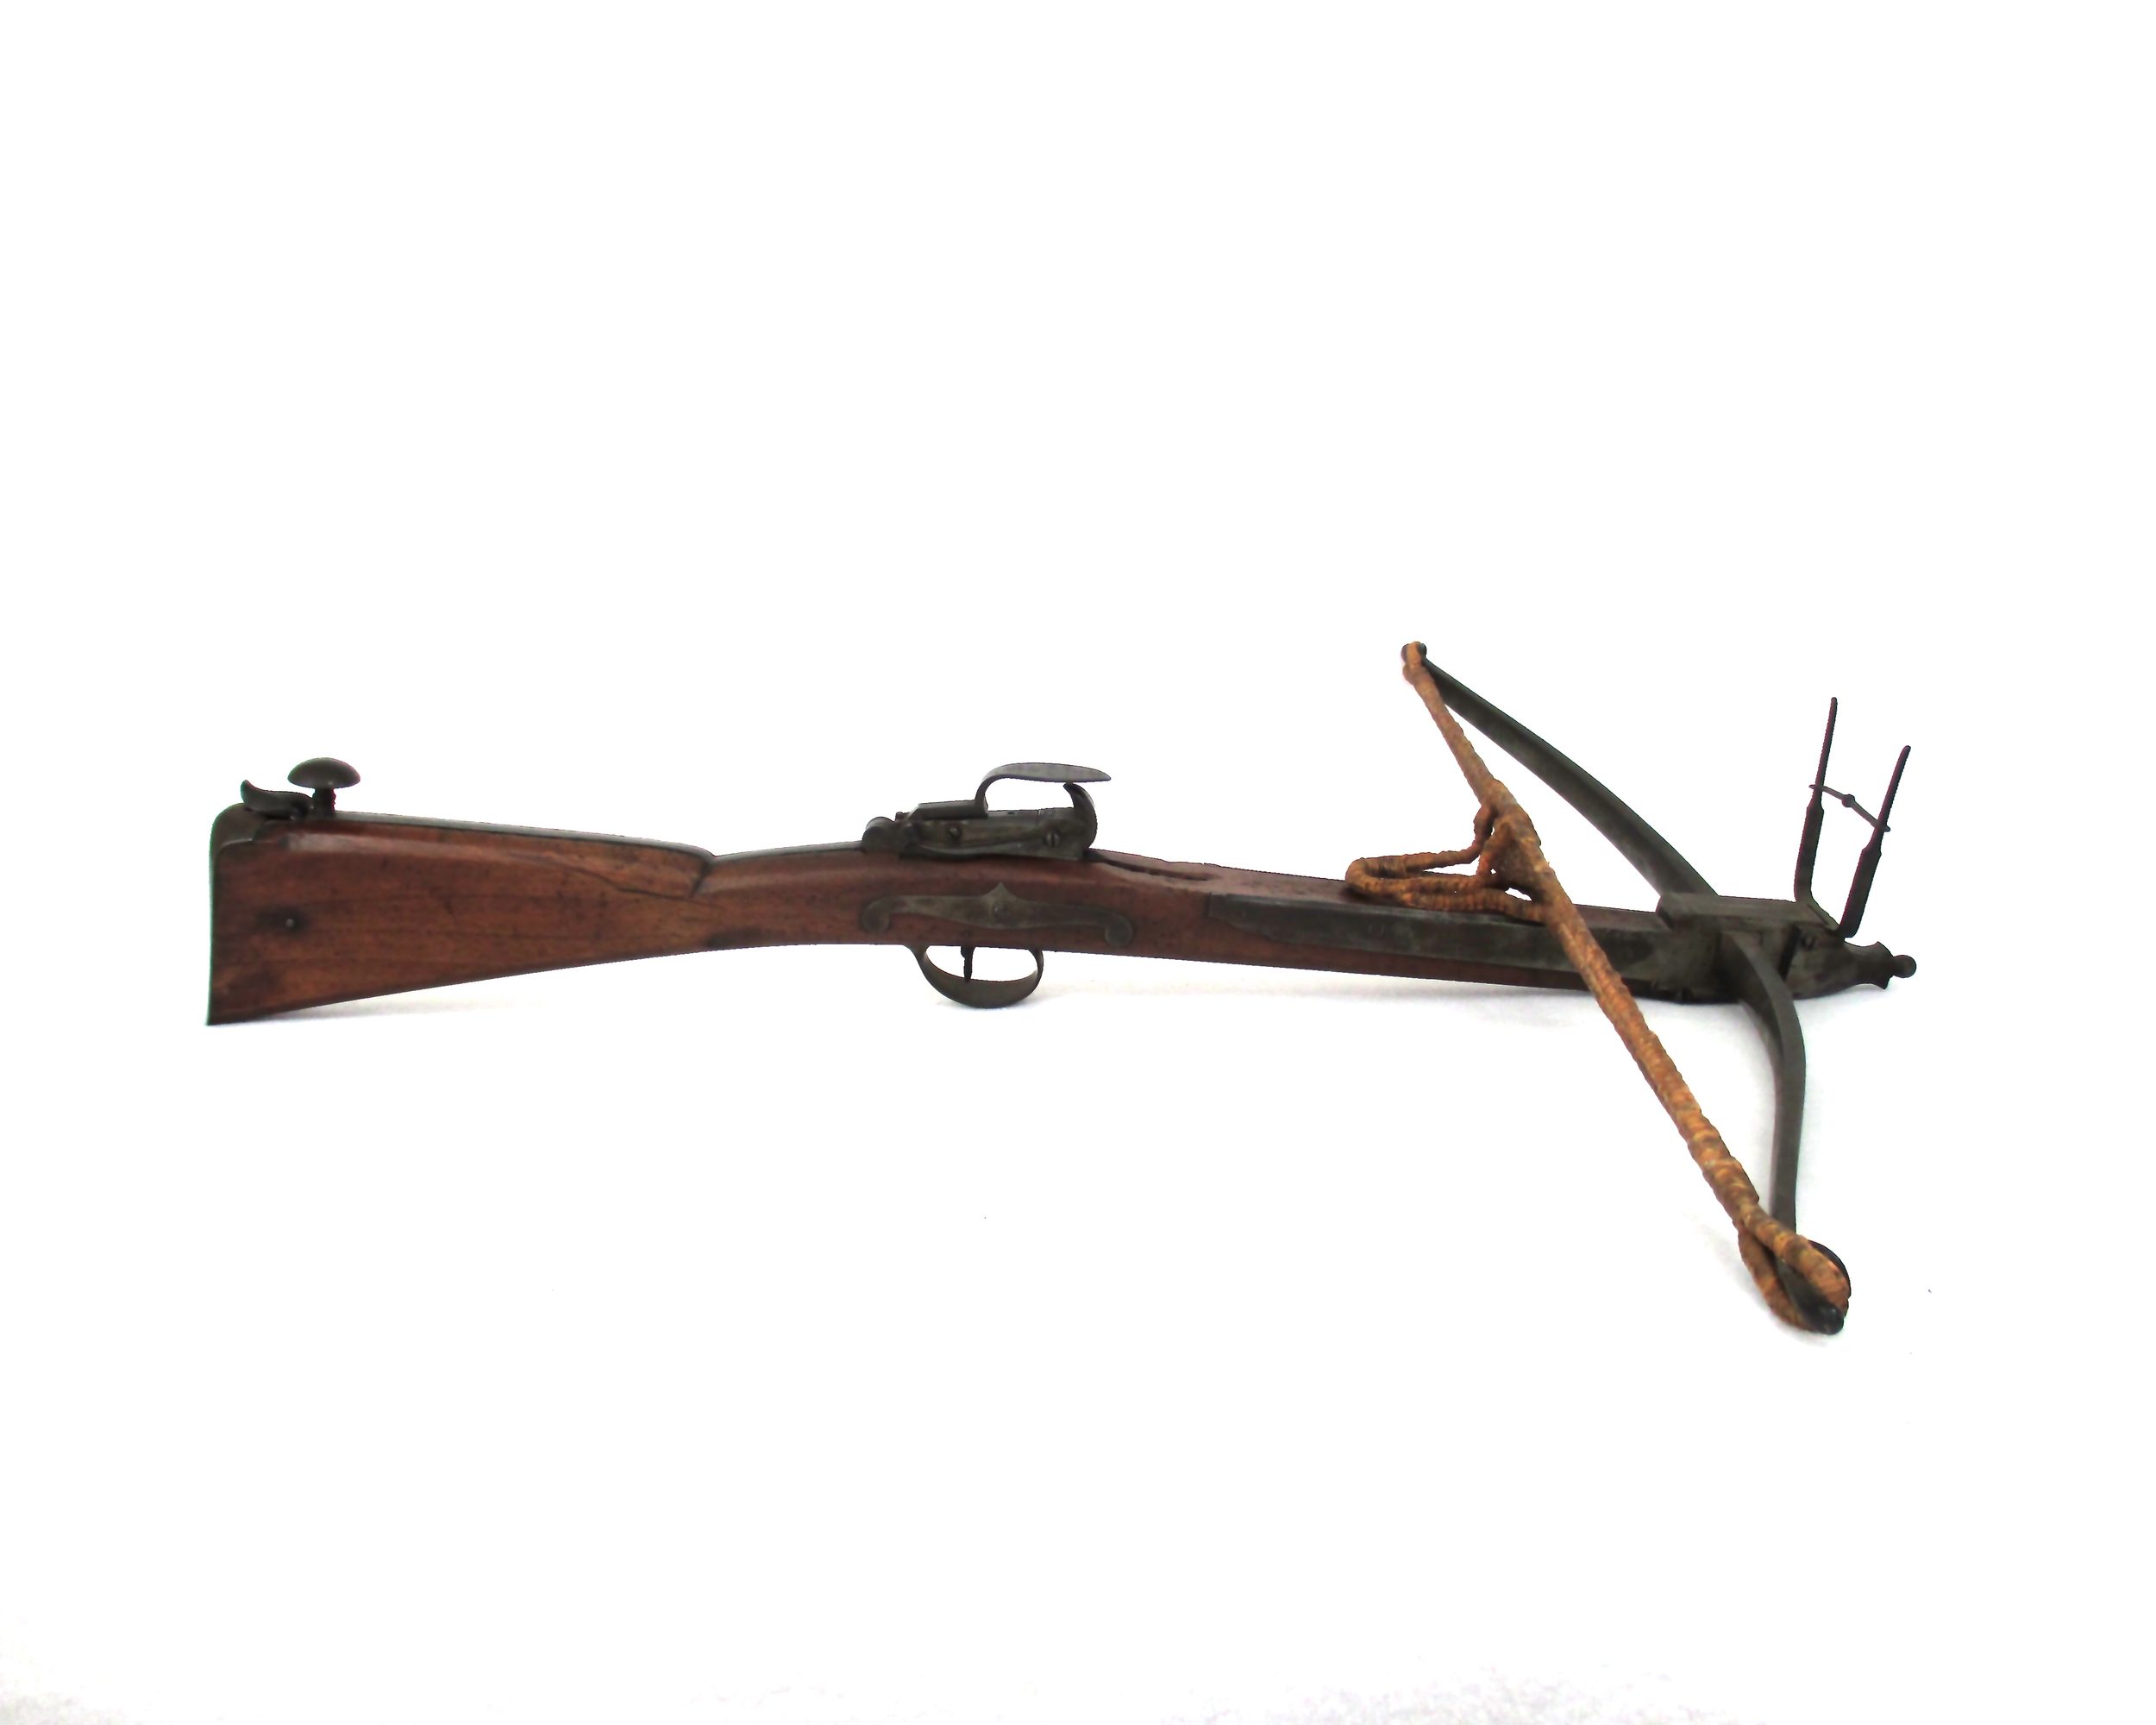 english-stonebow-crossbow-pellet-weapon-barker-gary-friedland-antique-arms-armor3.jpg